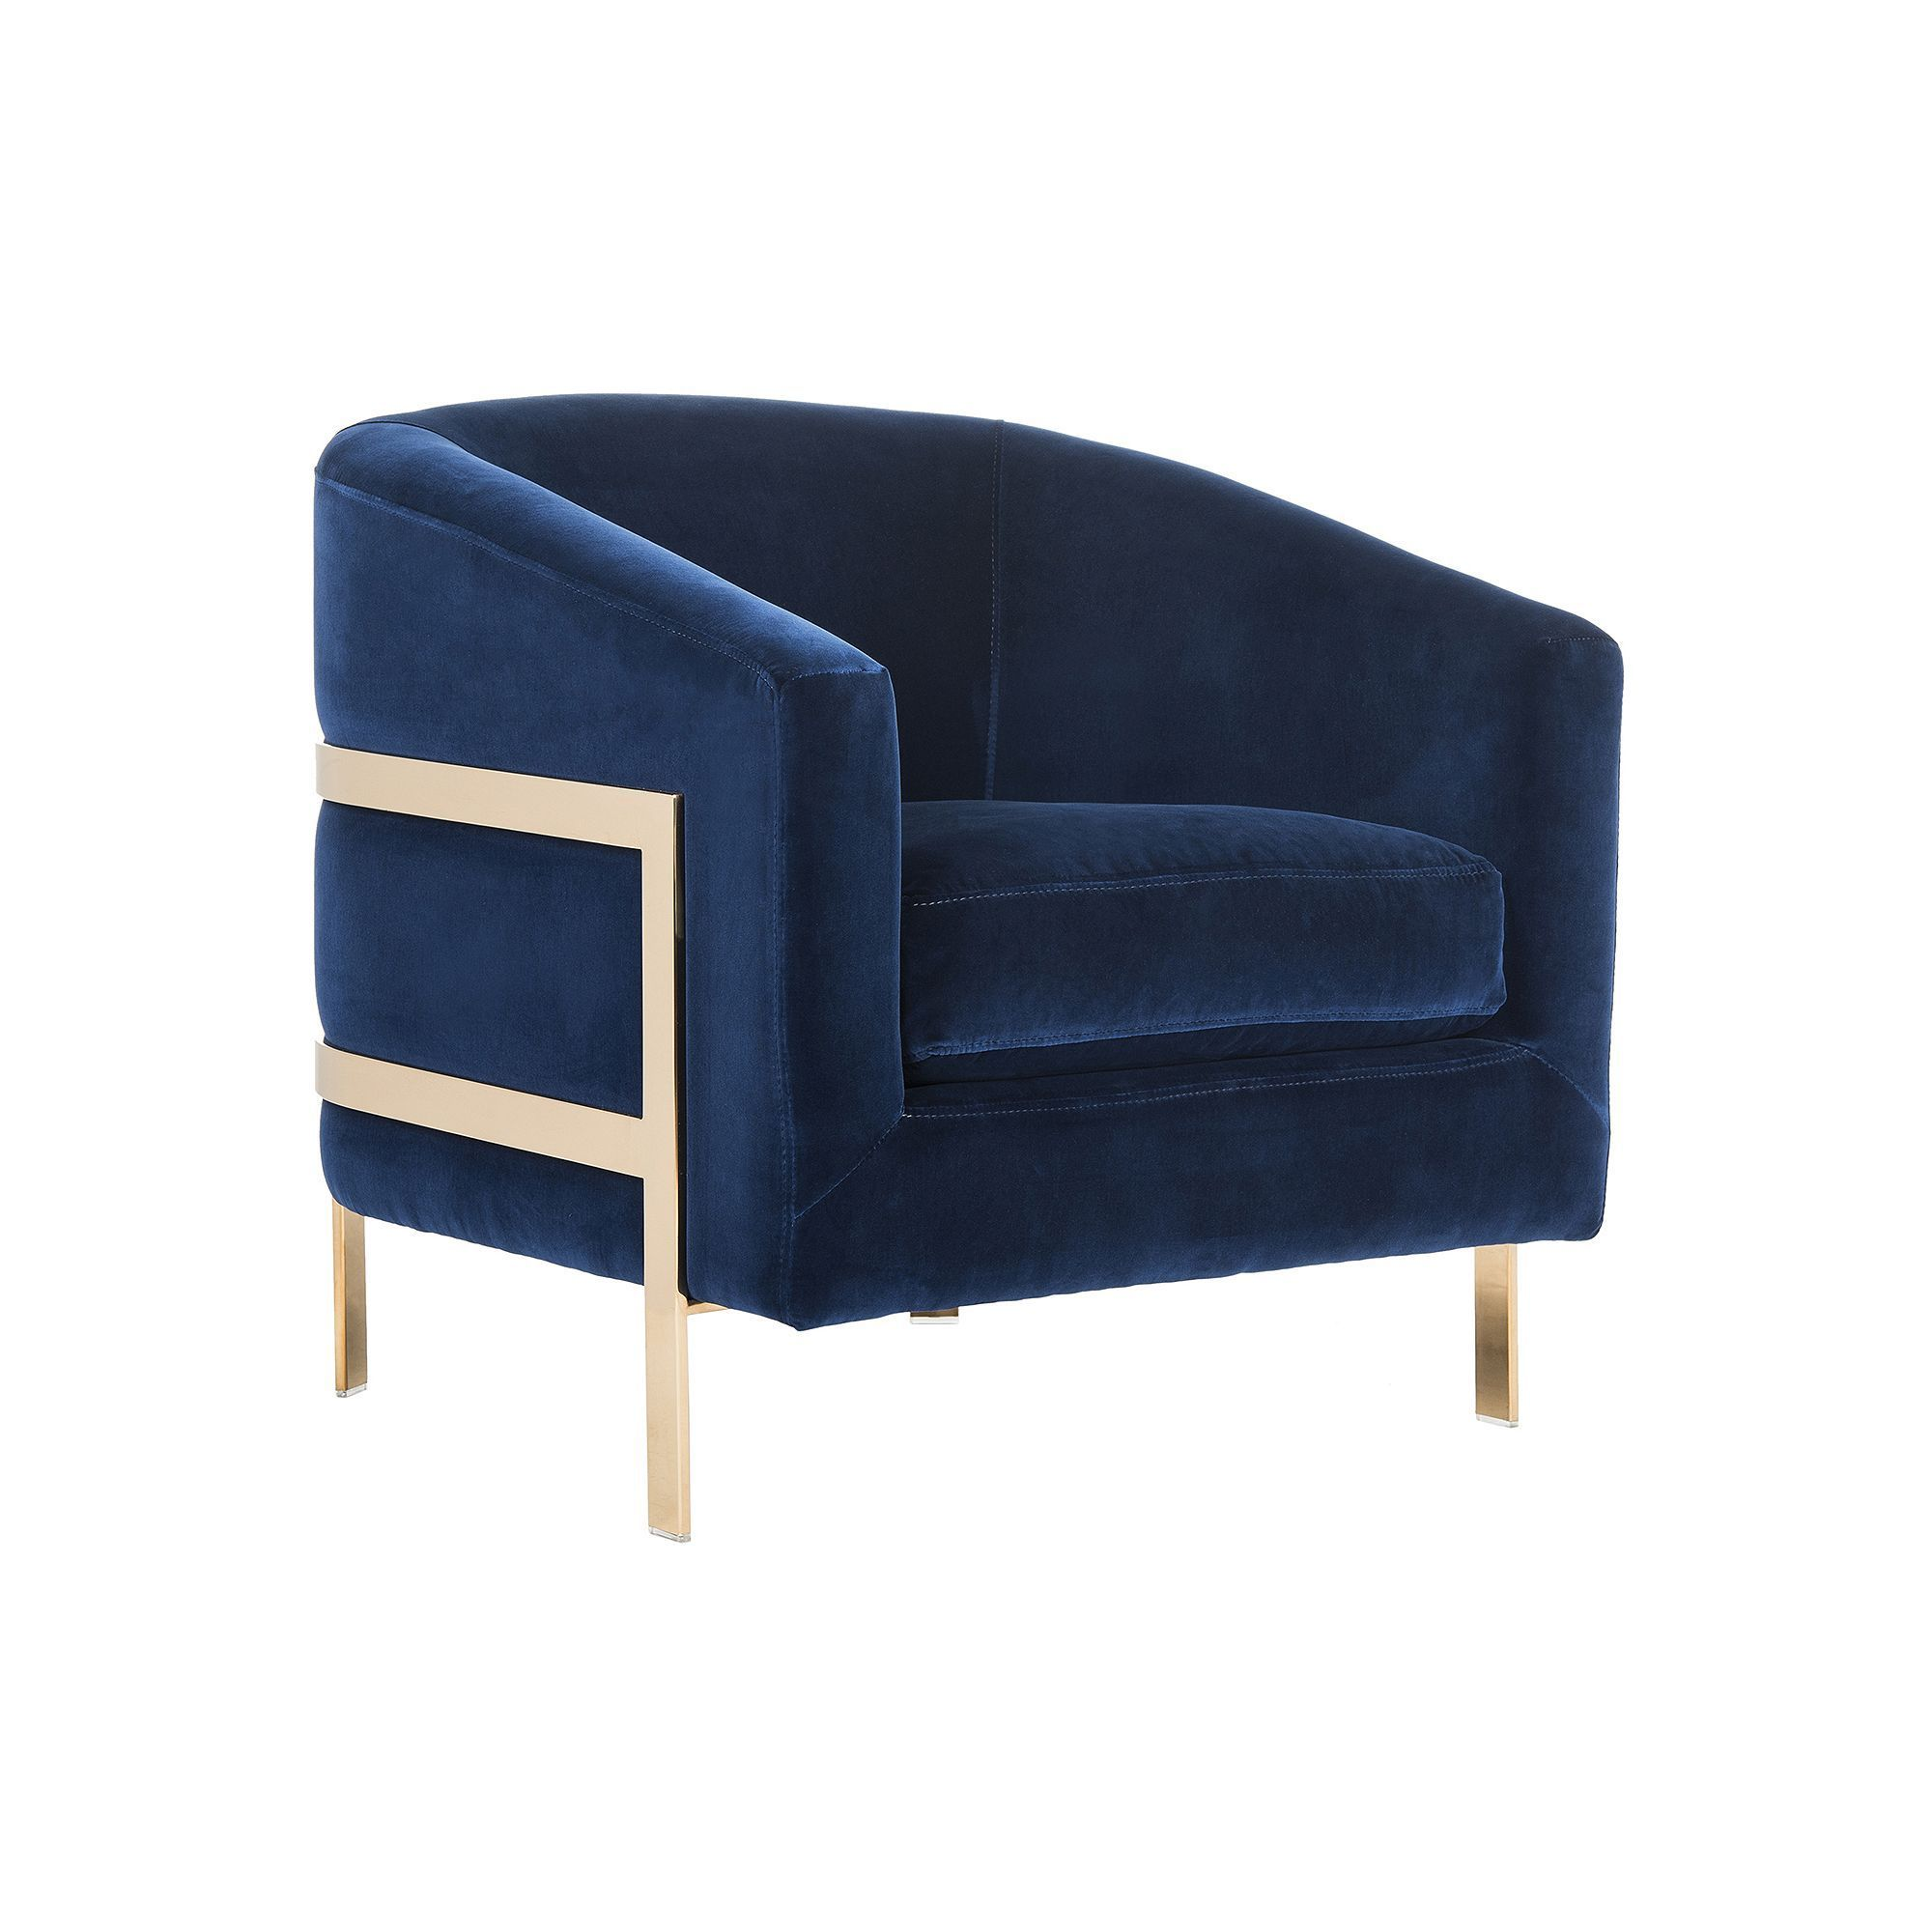 Safavieh Couture Navy Velvet Club Accent Chair In 2019 Products